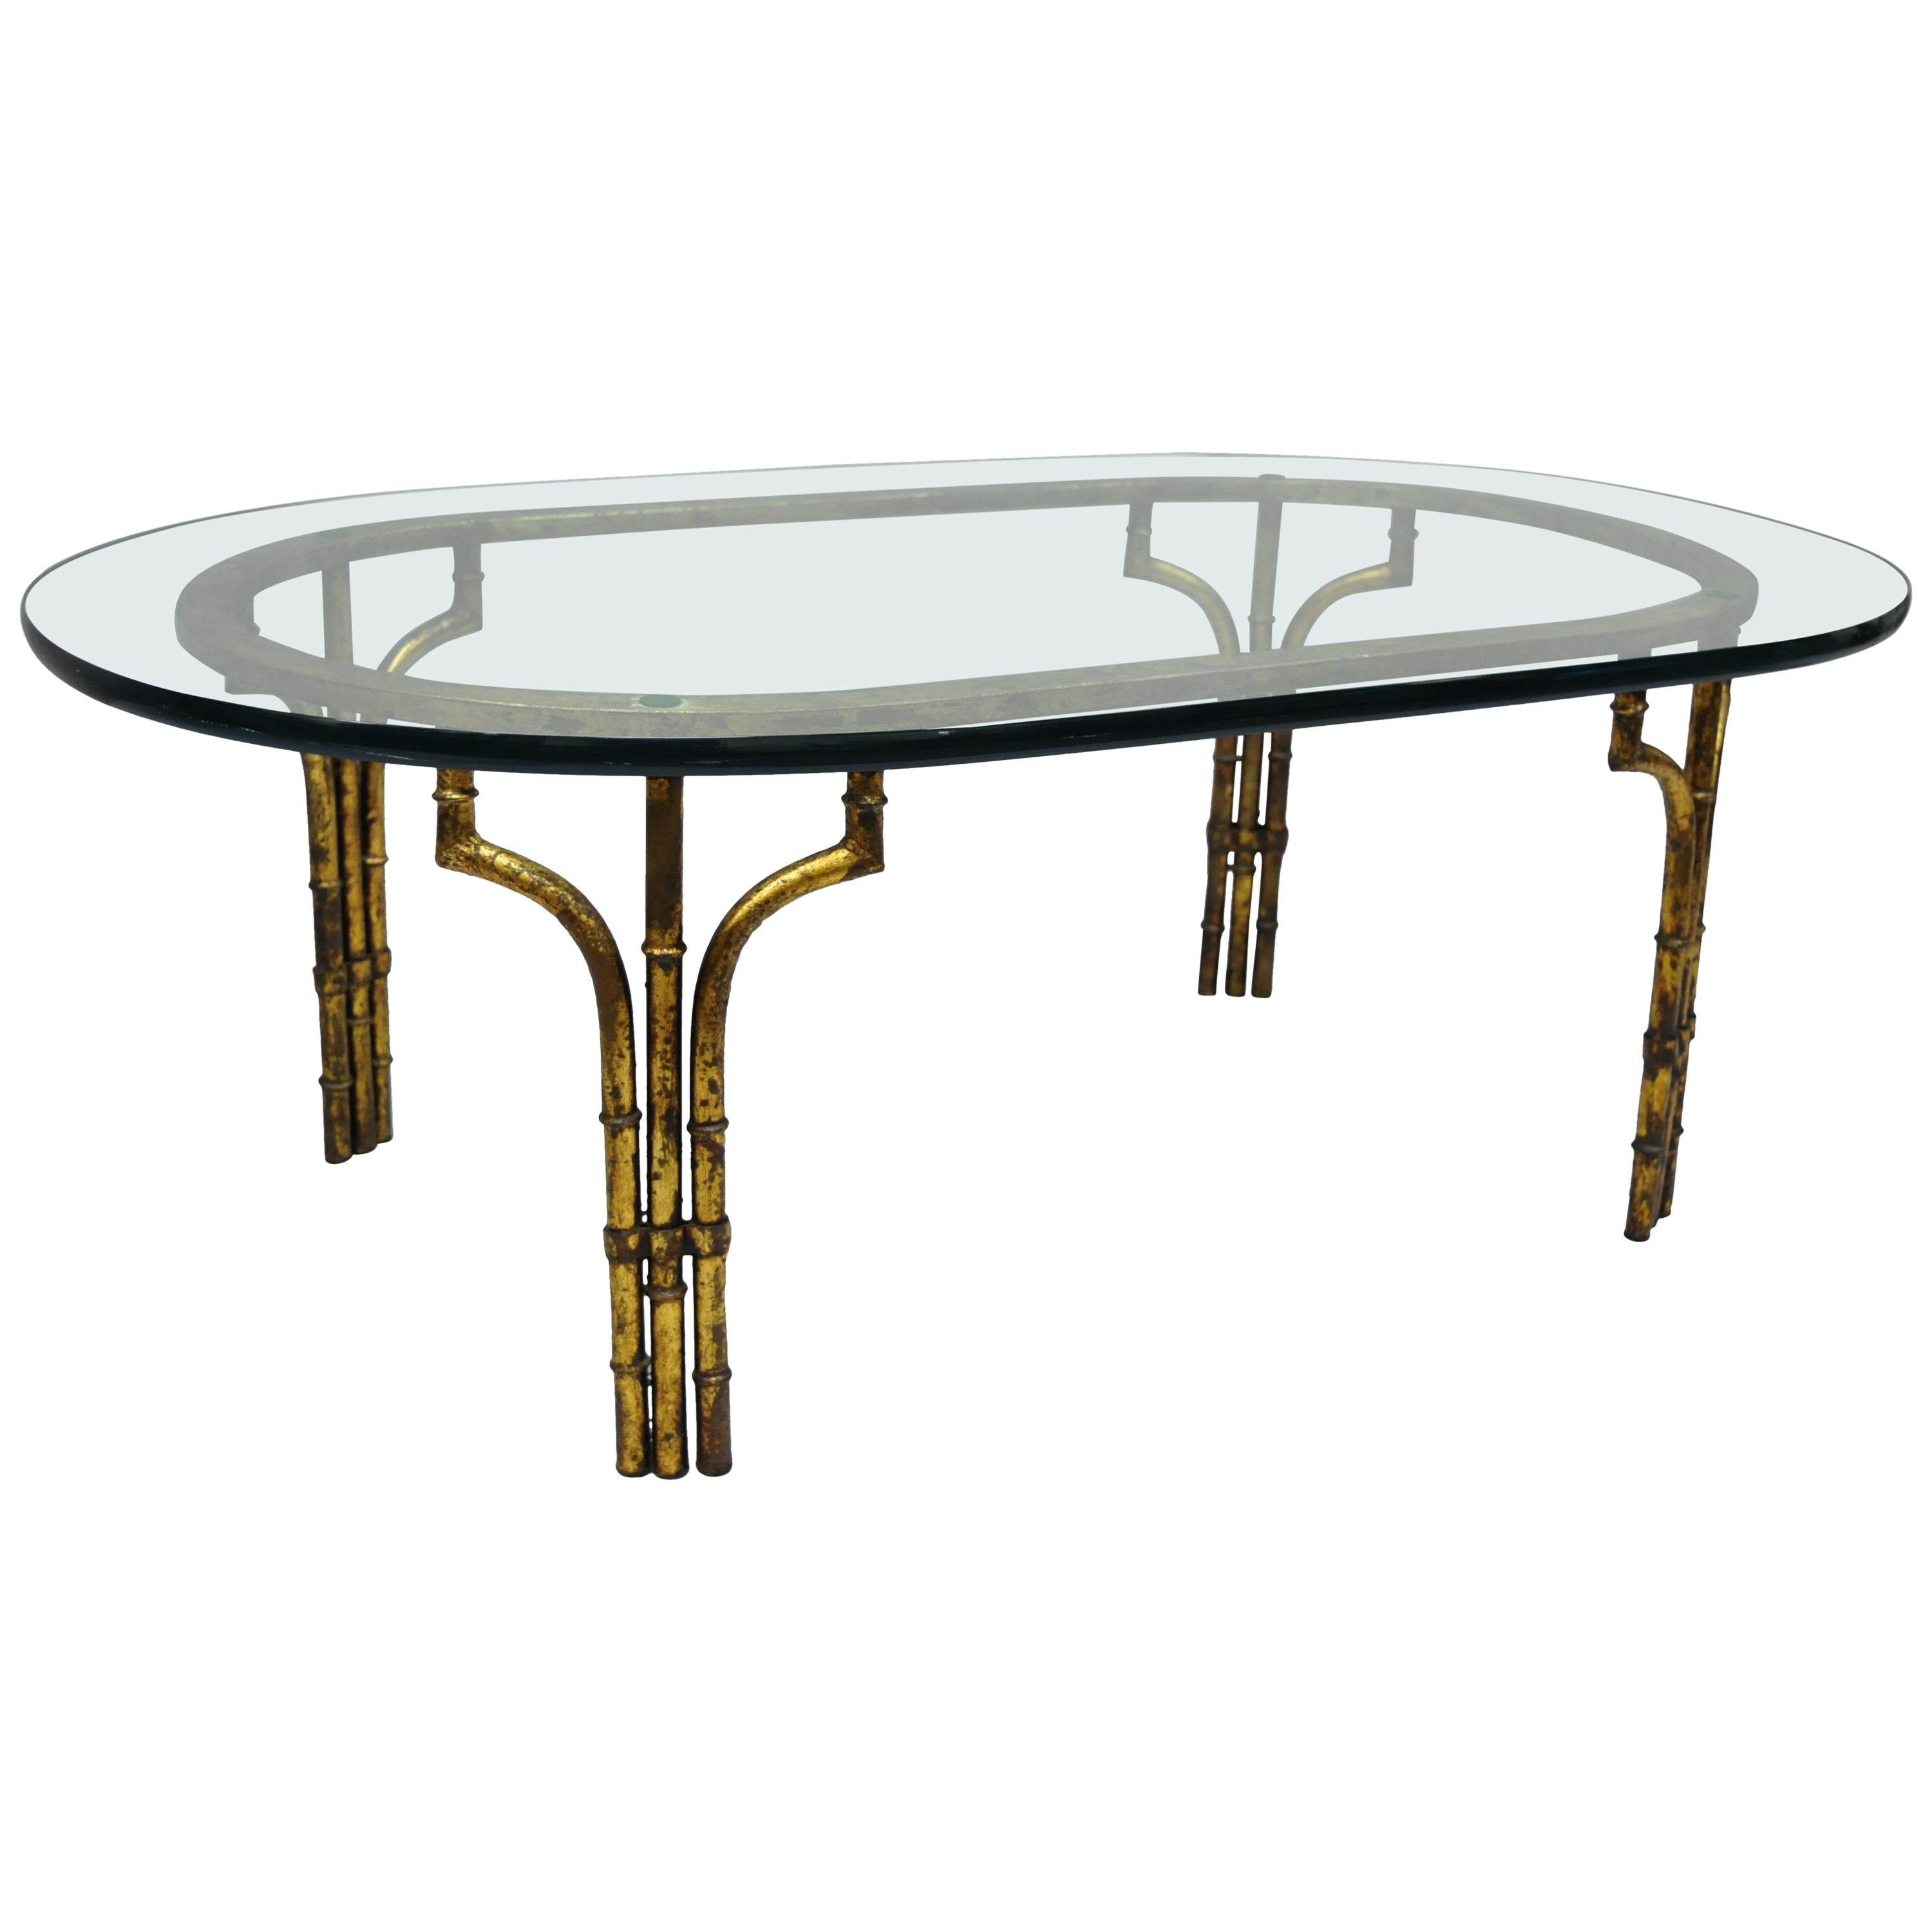 century faux bamboo gilt gold glass top iron coffee table for master end diy with drawer patio furniture cleaner black dog crate metal pipe frame hole wooden toscana nest tables